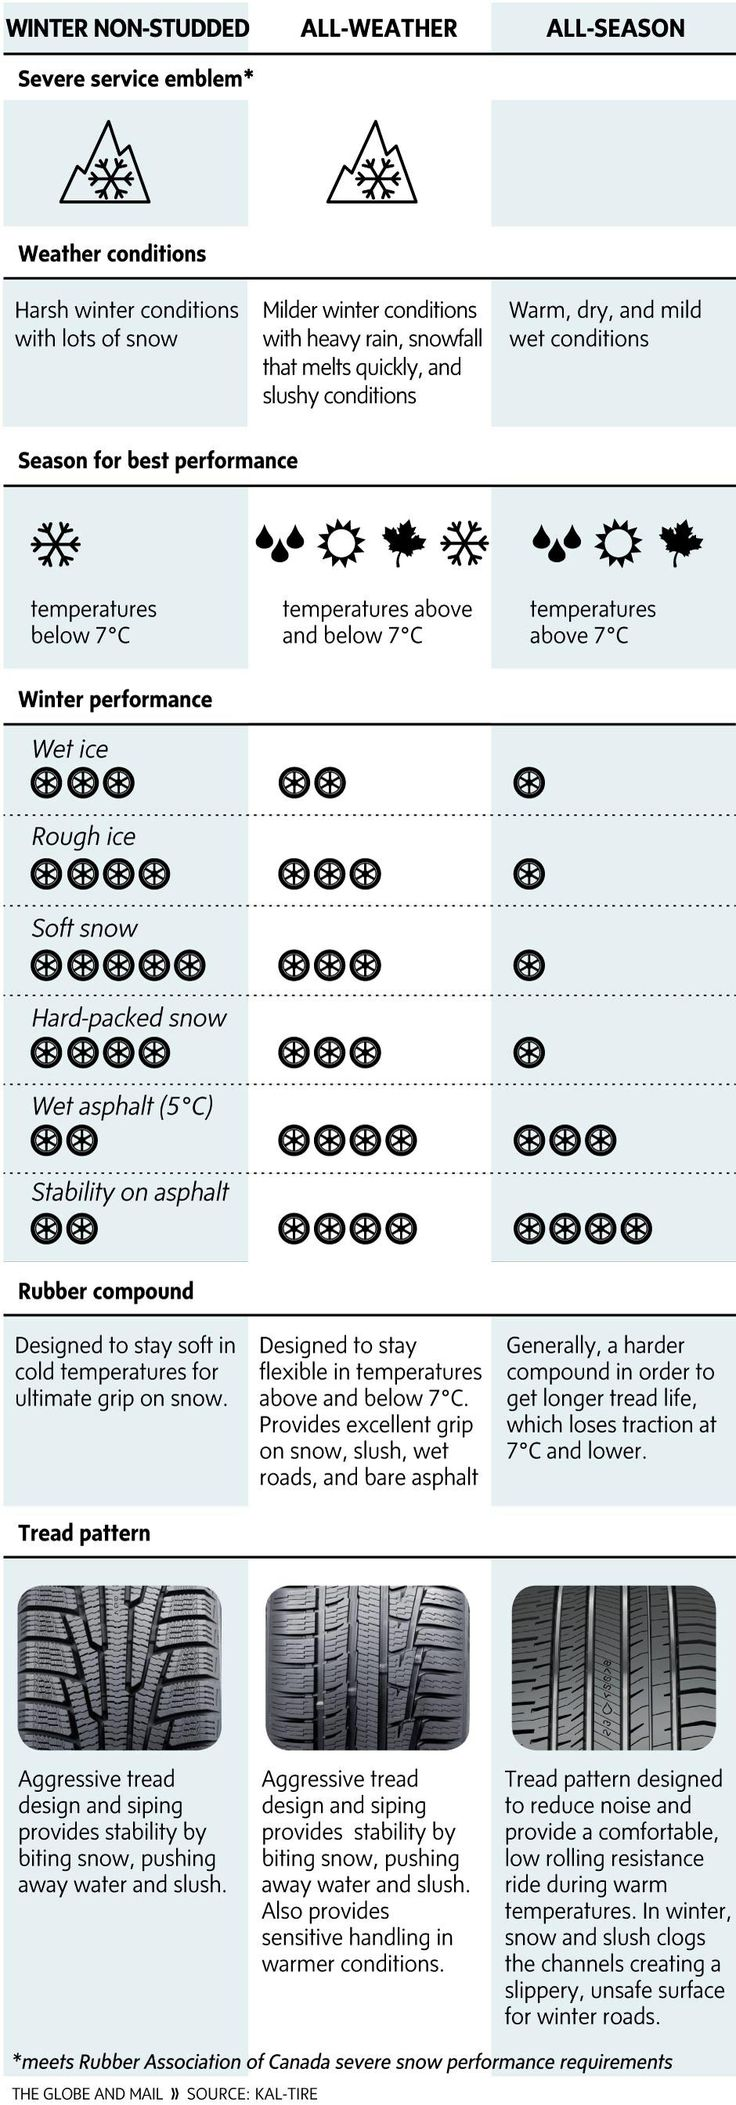 Are all-weather tires a good compromise? - The Globe and Mail